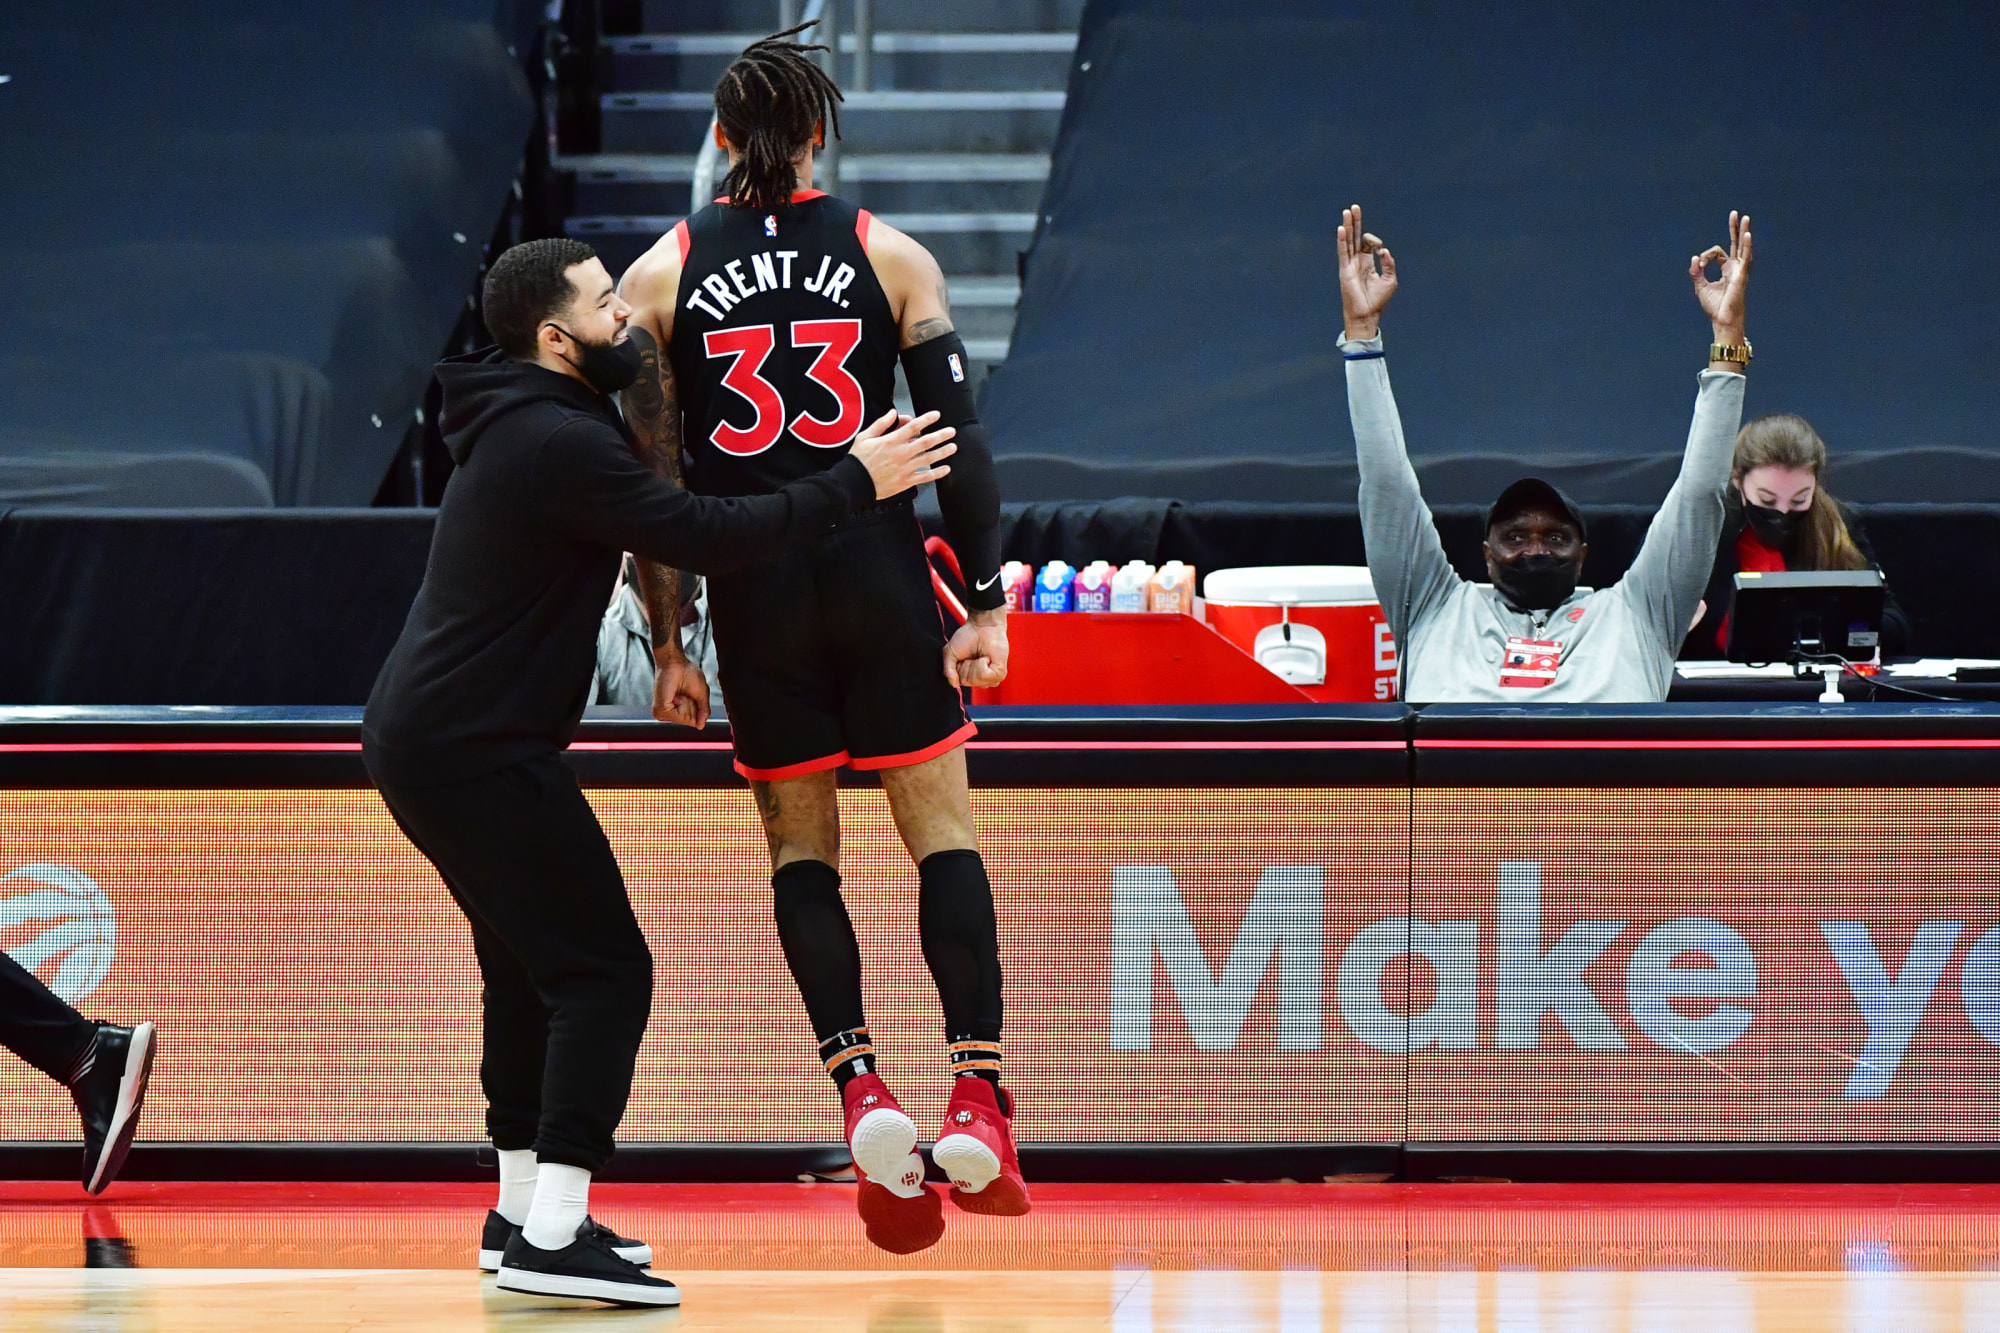 Toronto Raptors: Fred VanVleet proved to be an amazing leader for Nick Nurse on the bench